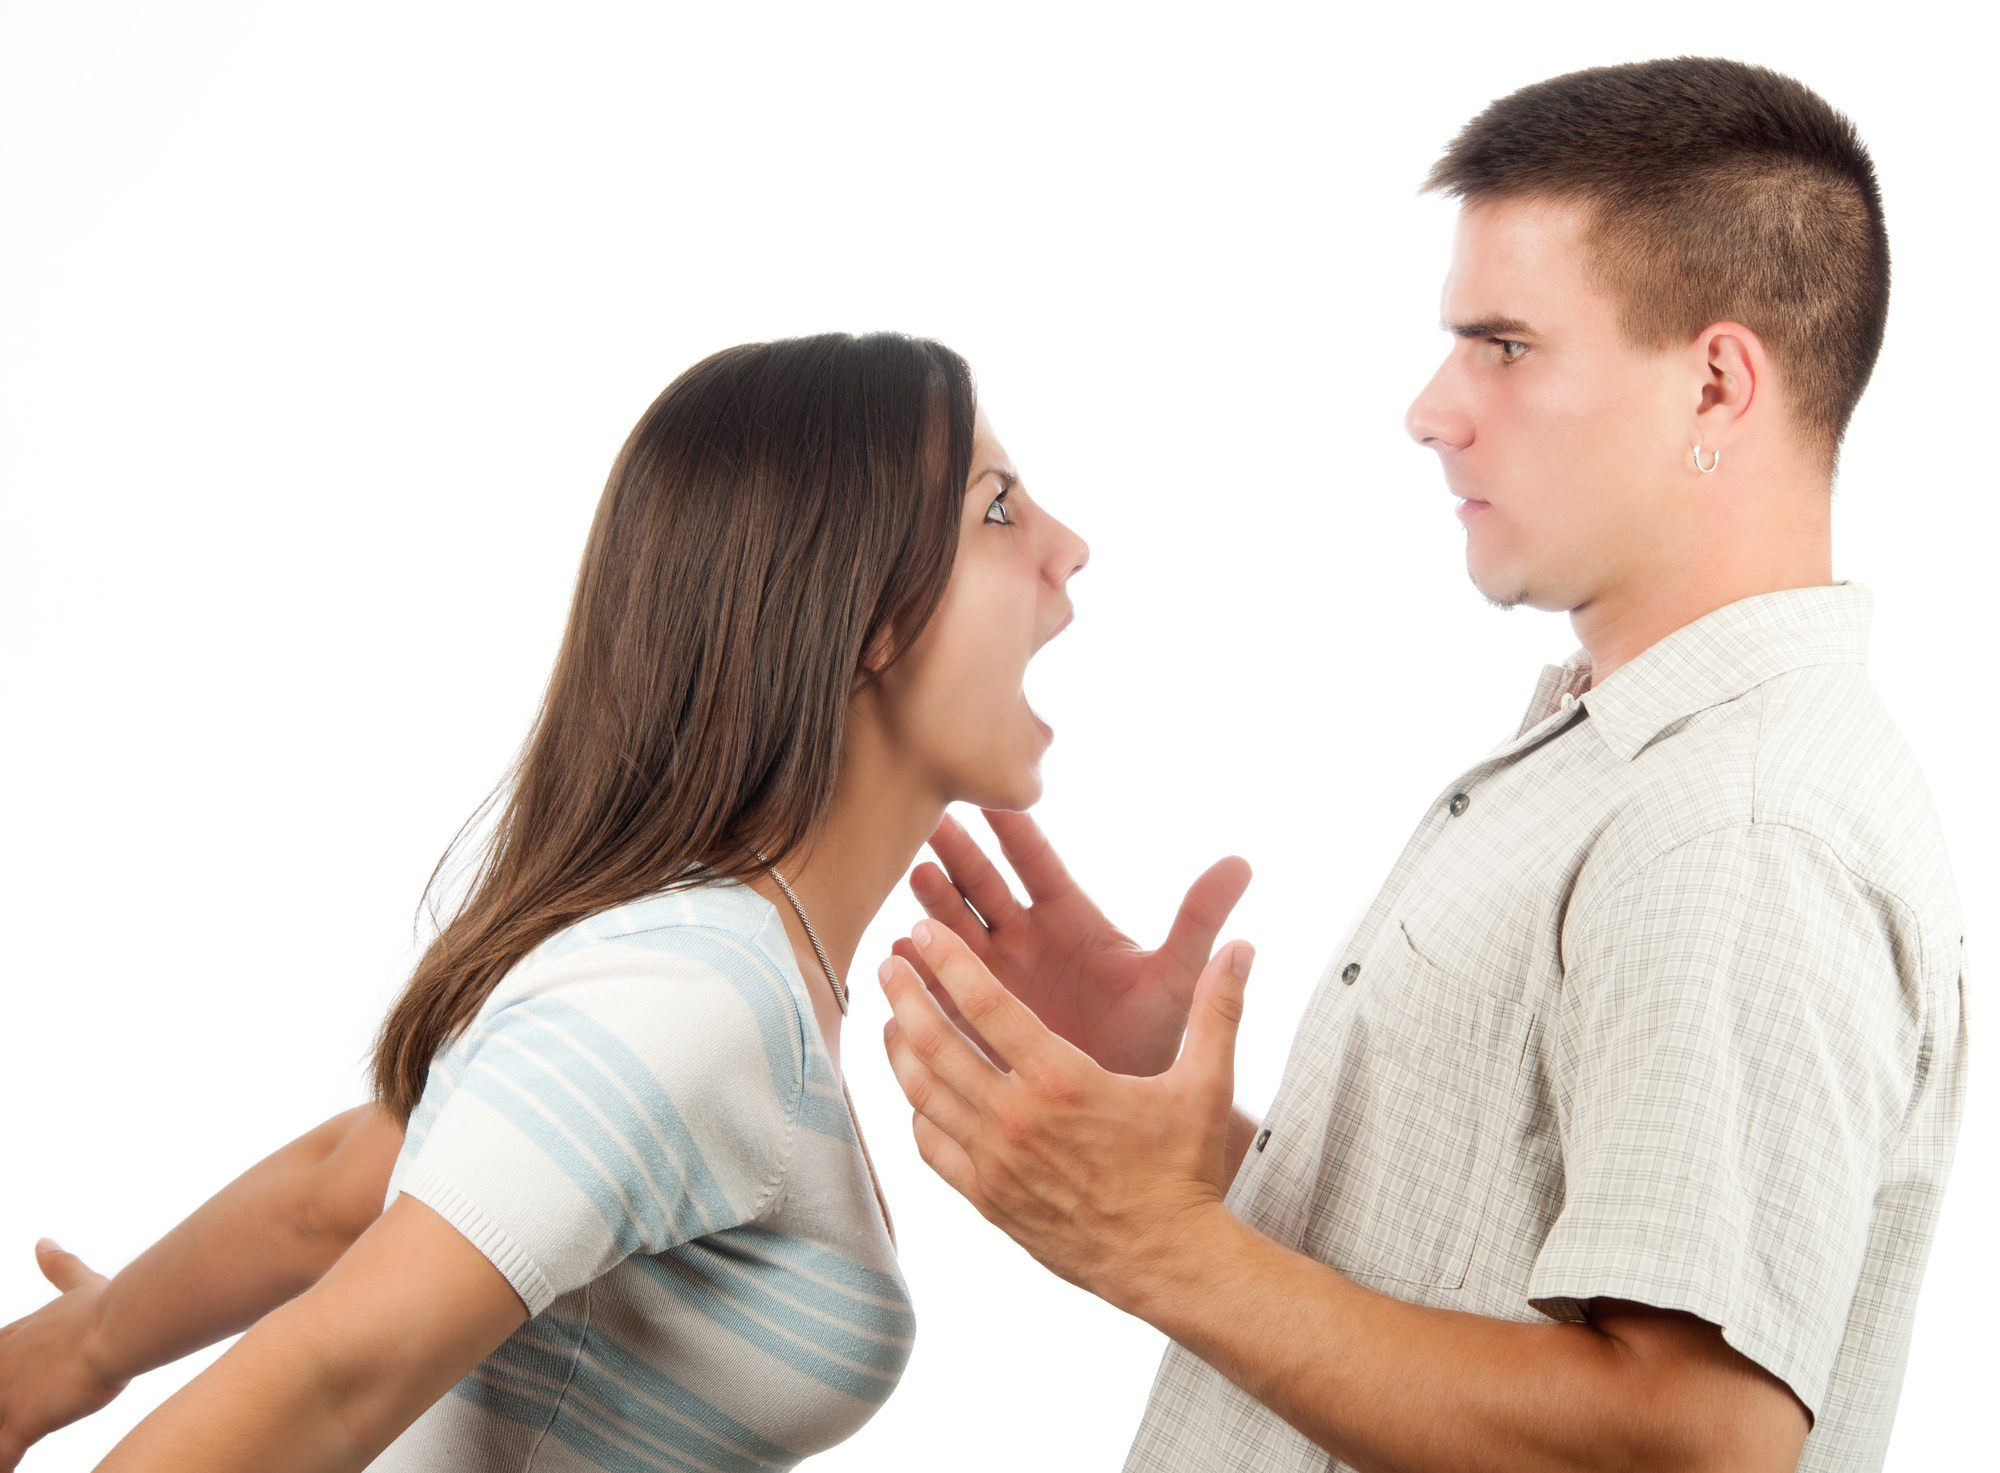 Telling someone to calm down usually has the opposite effect